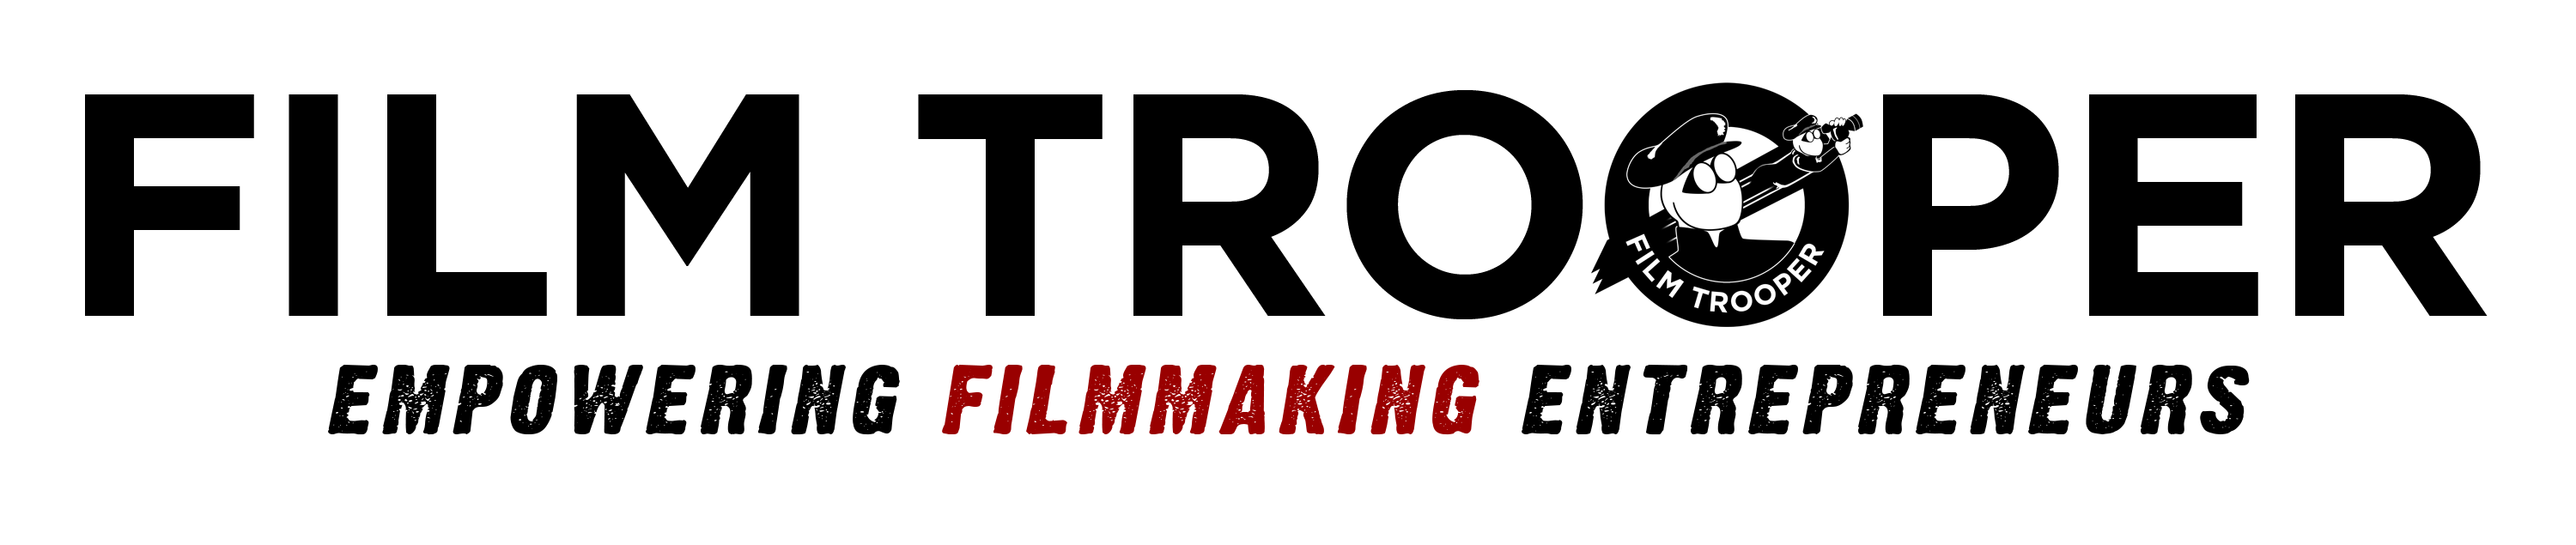 FILM TROOPER | The #1 Movie Making Podcast on iTunes!